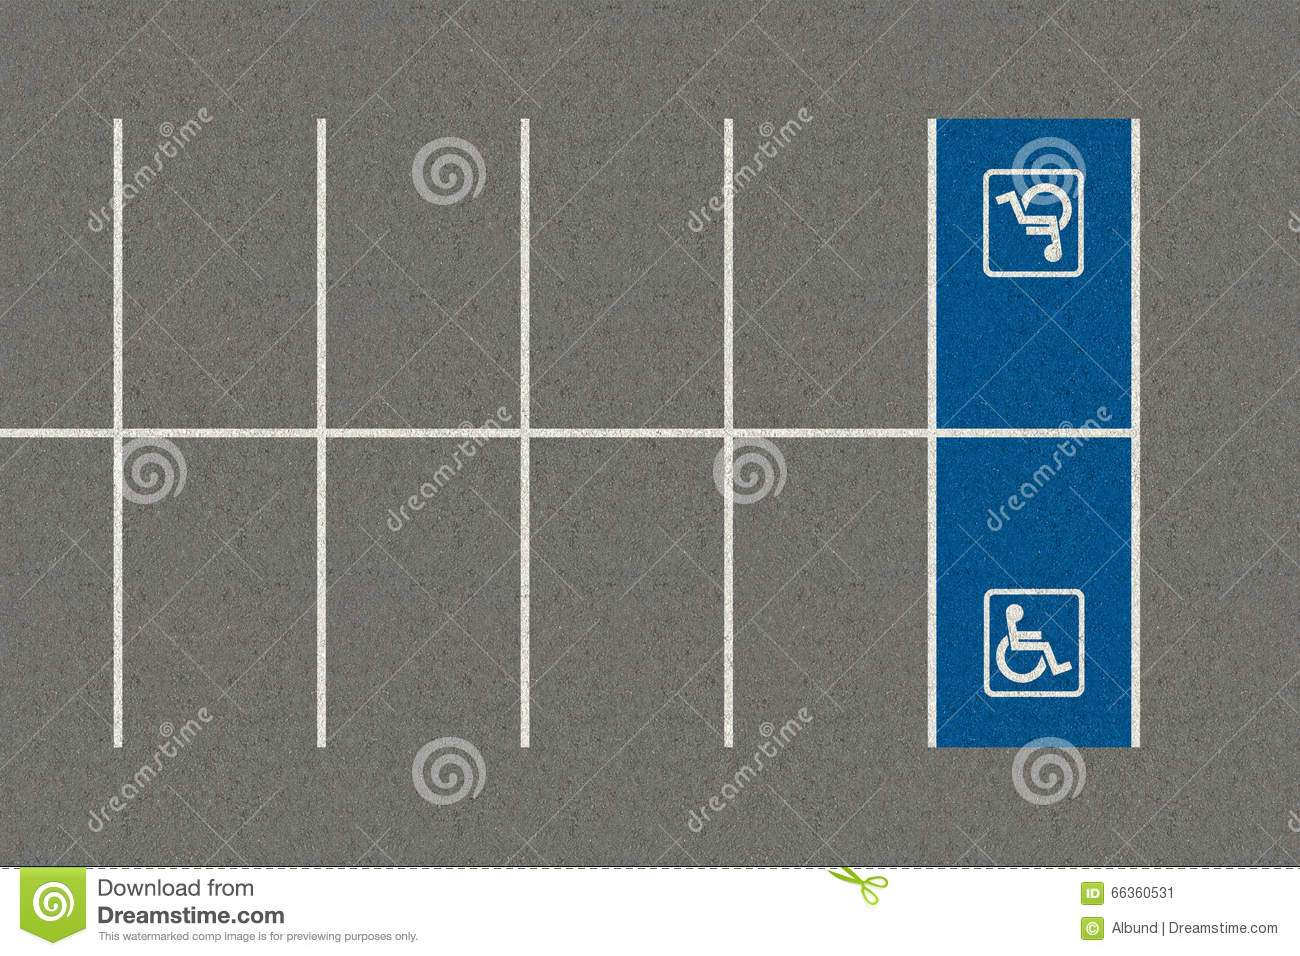 Parking lot lines clipart svg royalty free download Parking lot lines clipart » Clipart Portal svg royalty free download